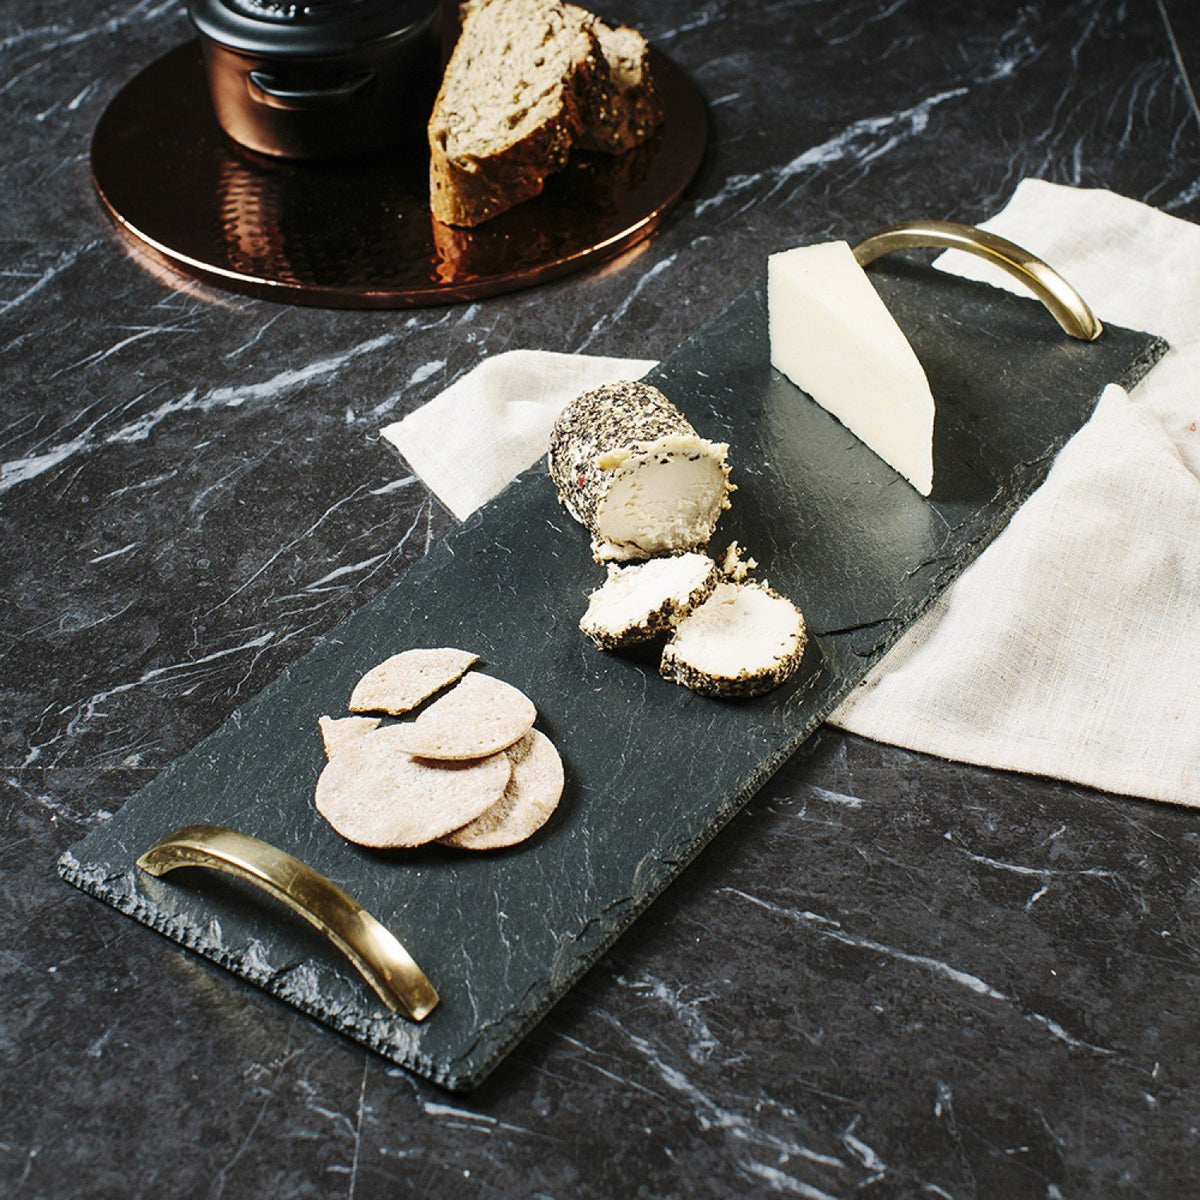 Small Serving Tray with Gold Handles